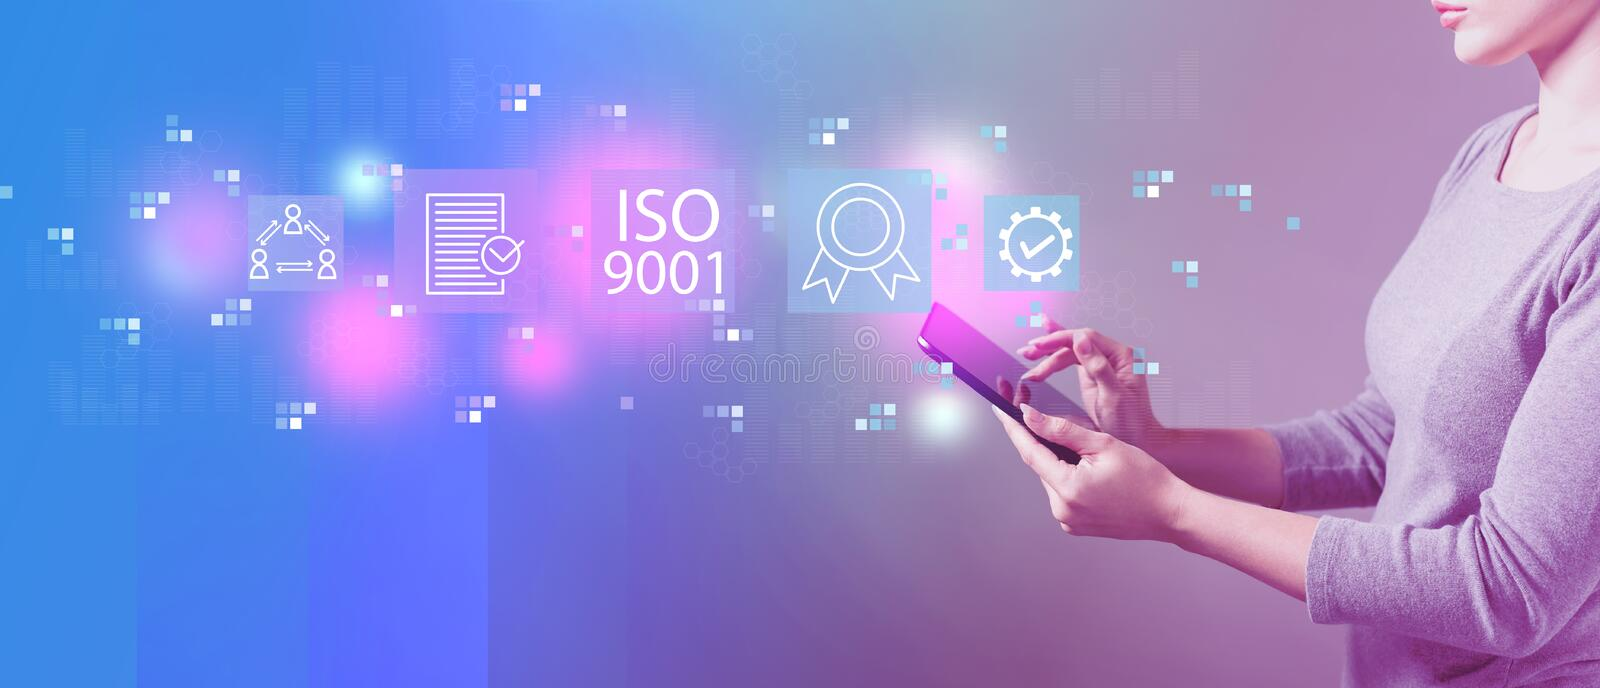 ISO 9001 with woman using a tablet. ISO 9001 with business woman using a tablet computer stock illustration